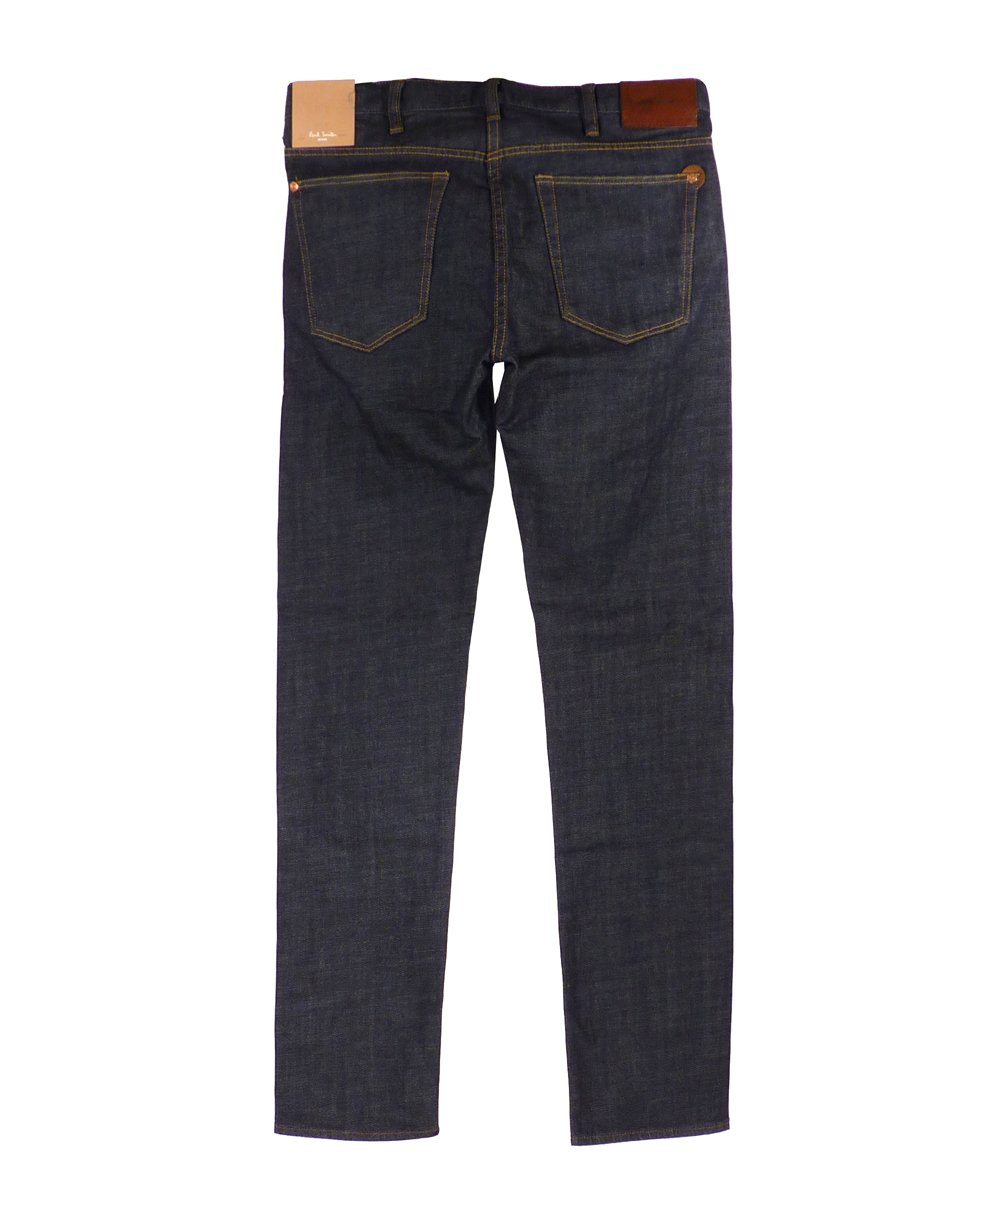 paul smith blue tapered fit jeans jlcj 301m 407 paul smith from jonathan trumbull uk. Black Bedroom Furniture Sets. Home Design Ideas